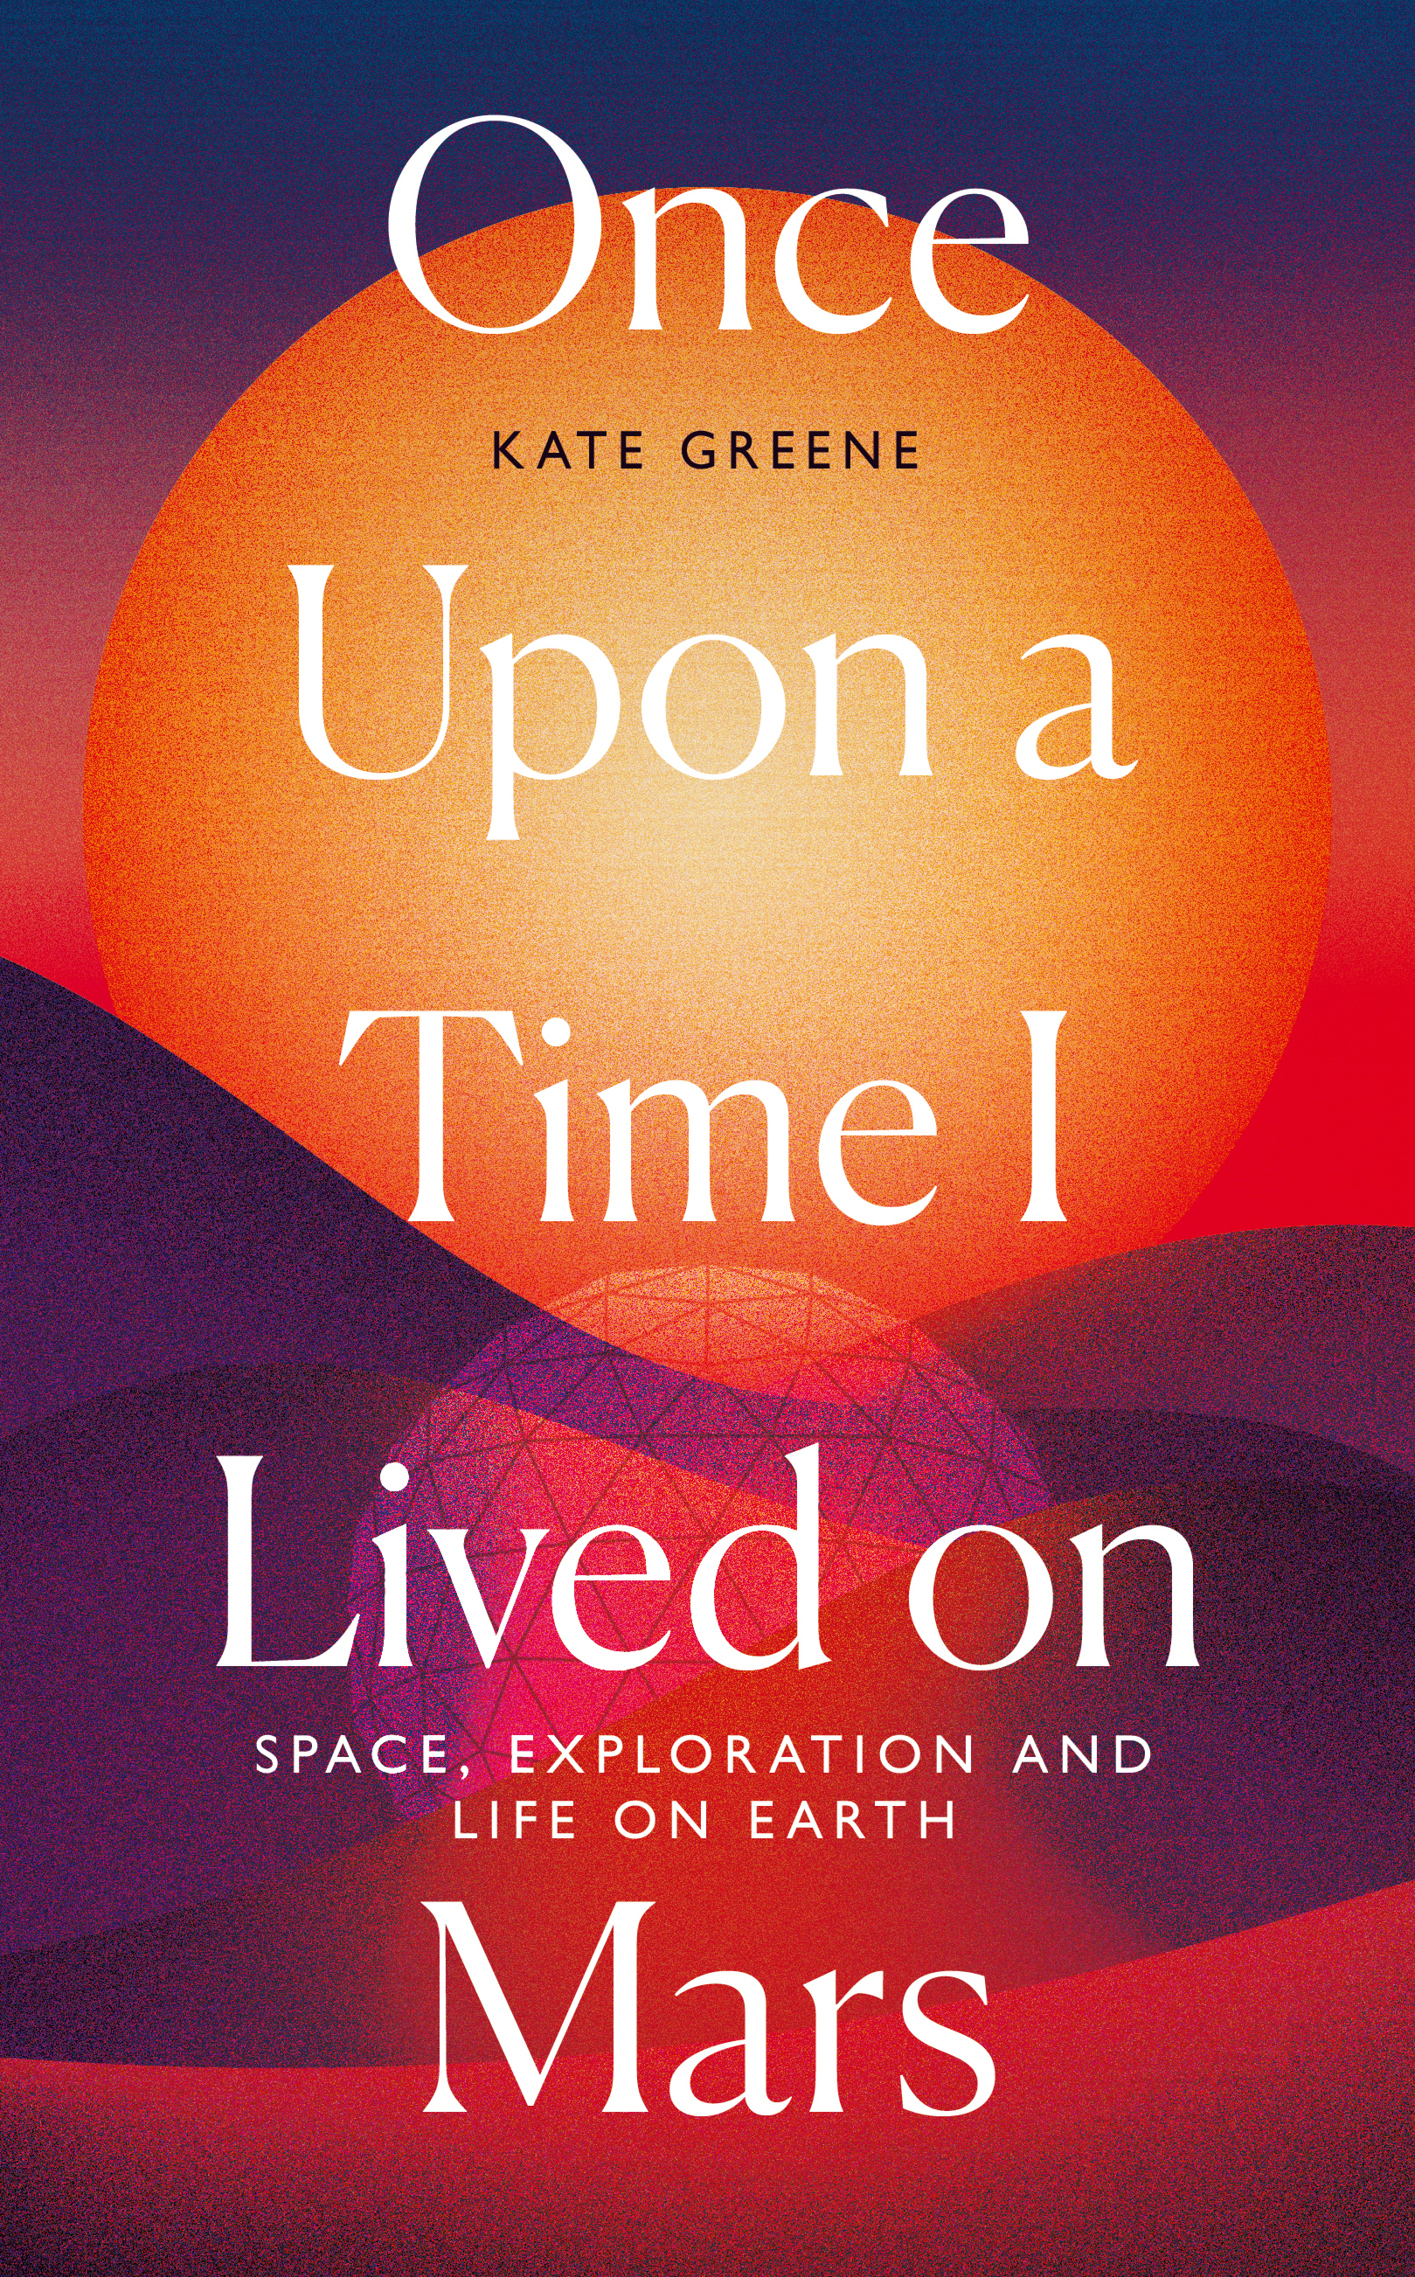 Kate Greene's book about her experience, Once Upon A Time I Lived On Mars